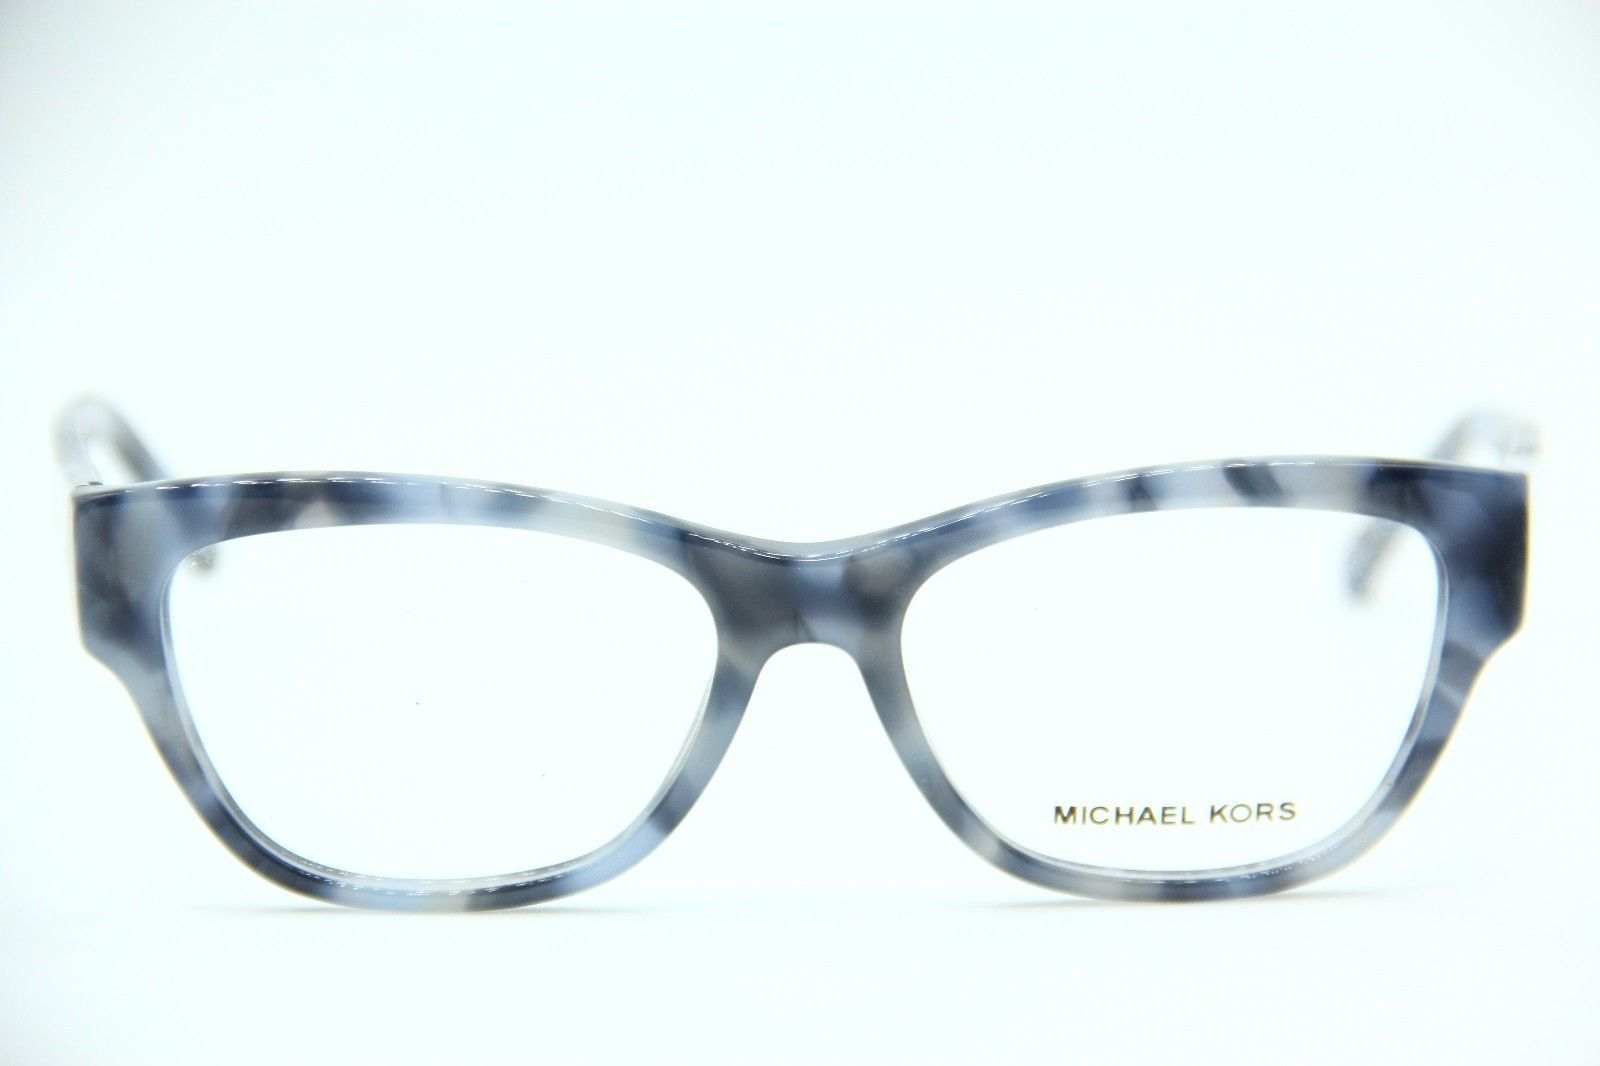 NEW MICHAEL KORS MK 4037 3209 BLUE EYEGLASSES AUTHENTIC RX MK4037 53-16